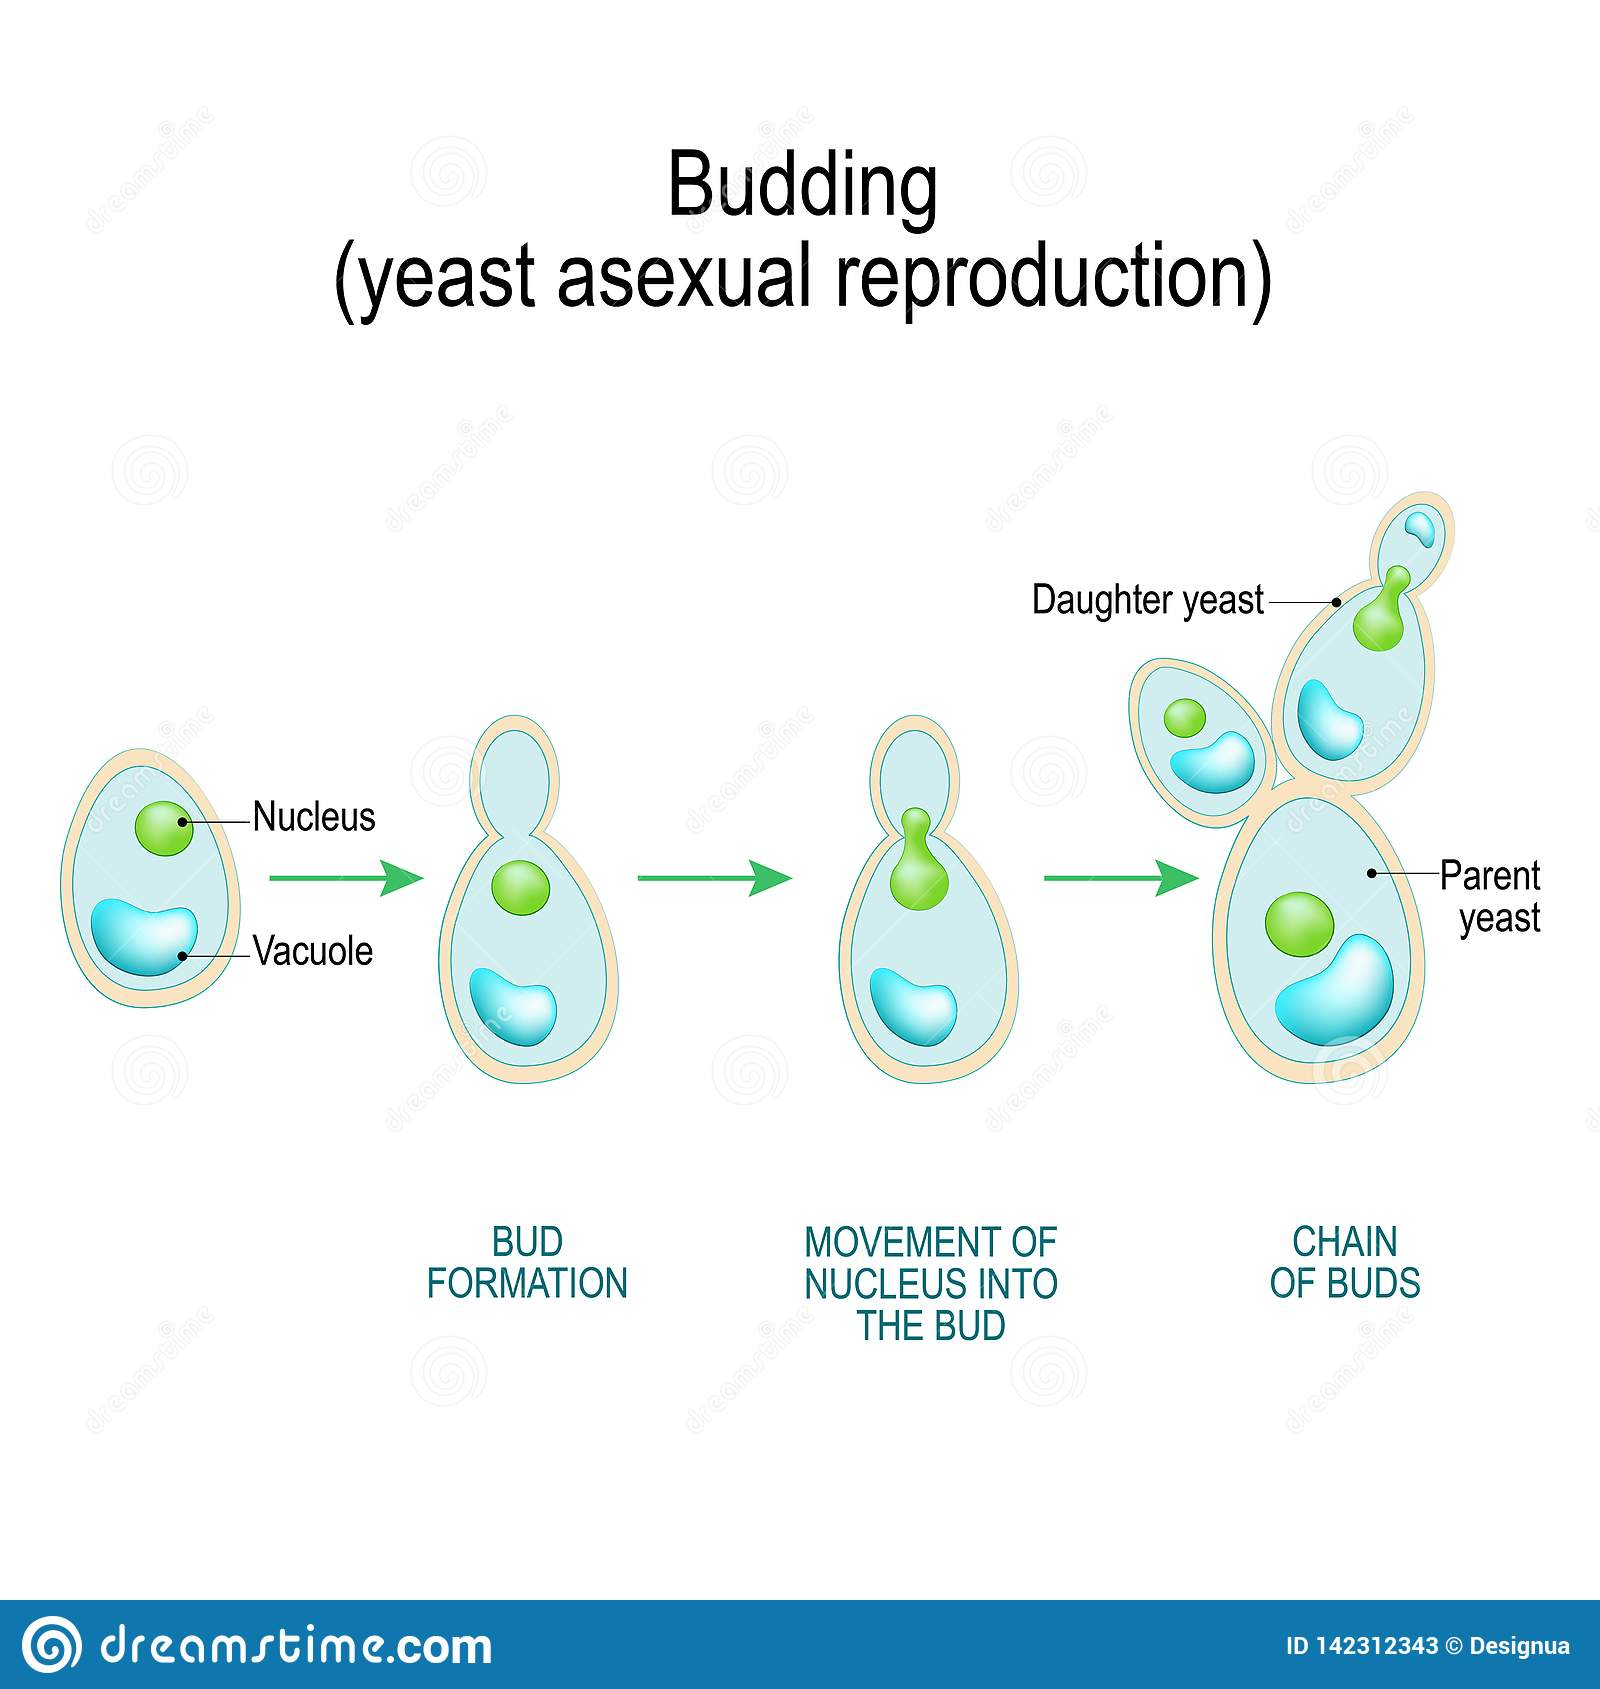 Yeasts reproduce asexually or by budding